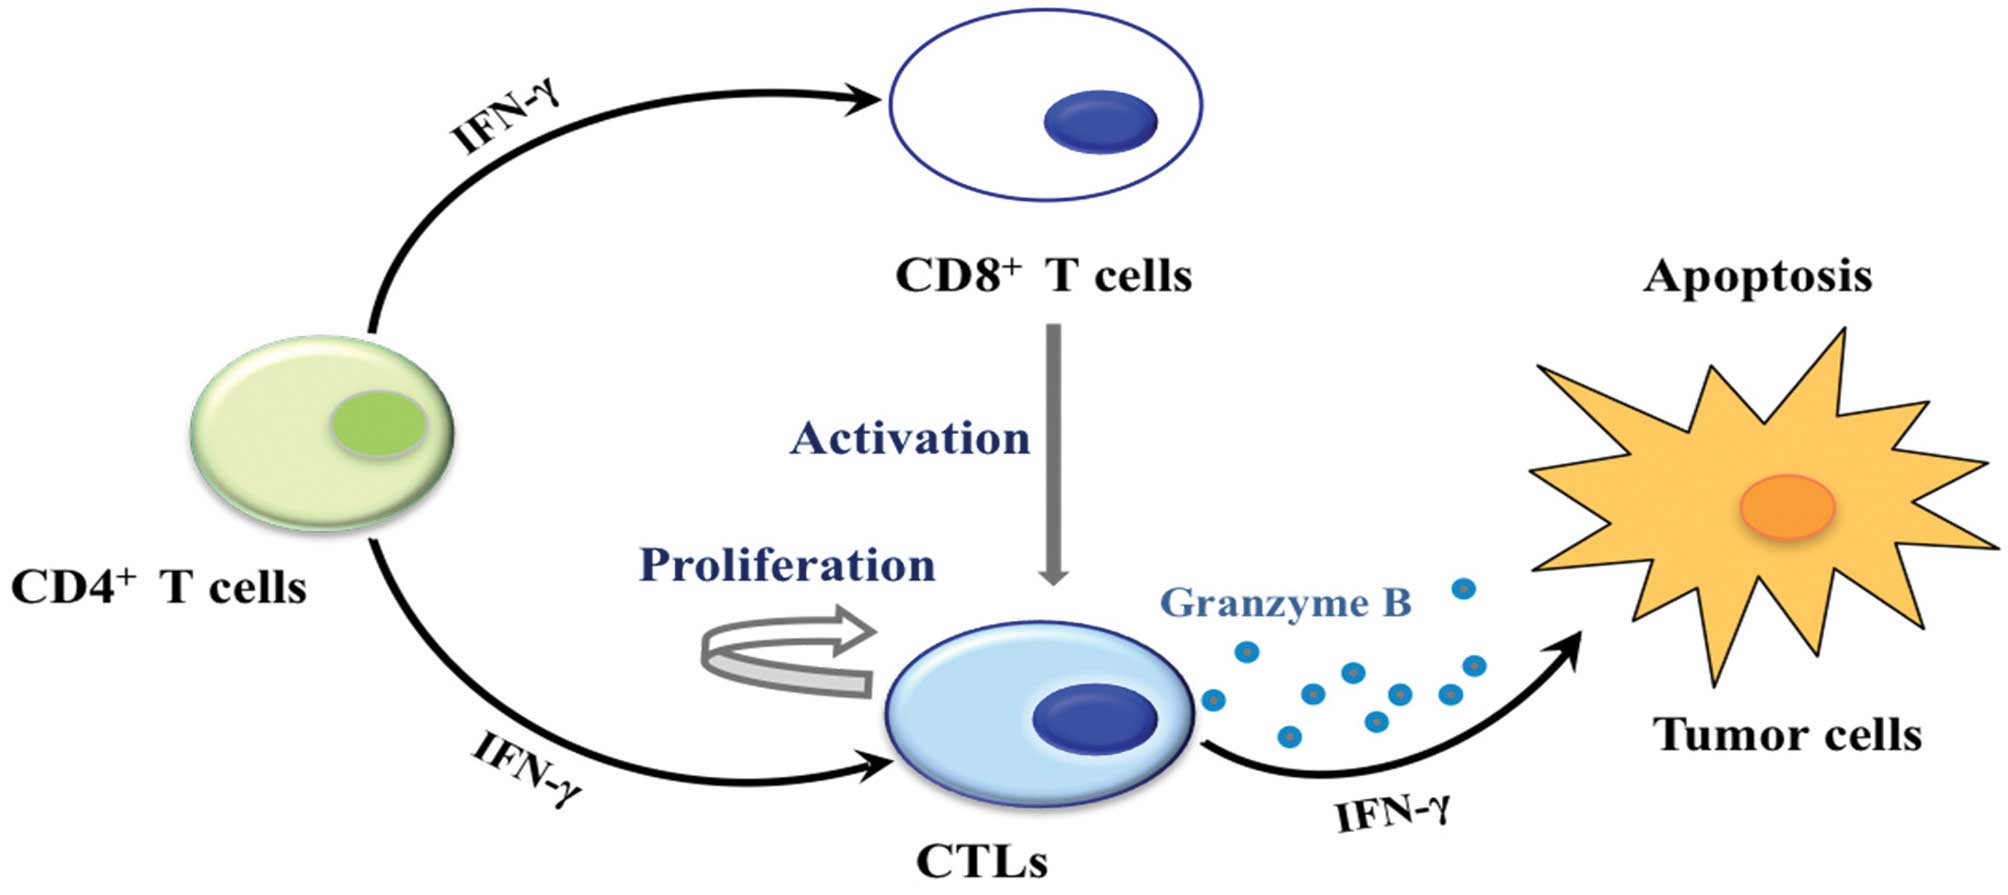 Stem Cell Characterization and Analysis Tools